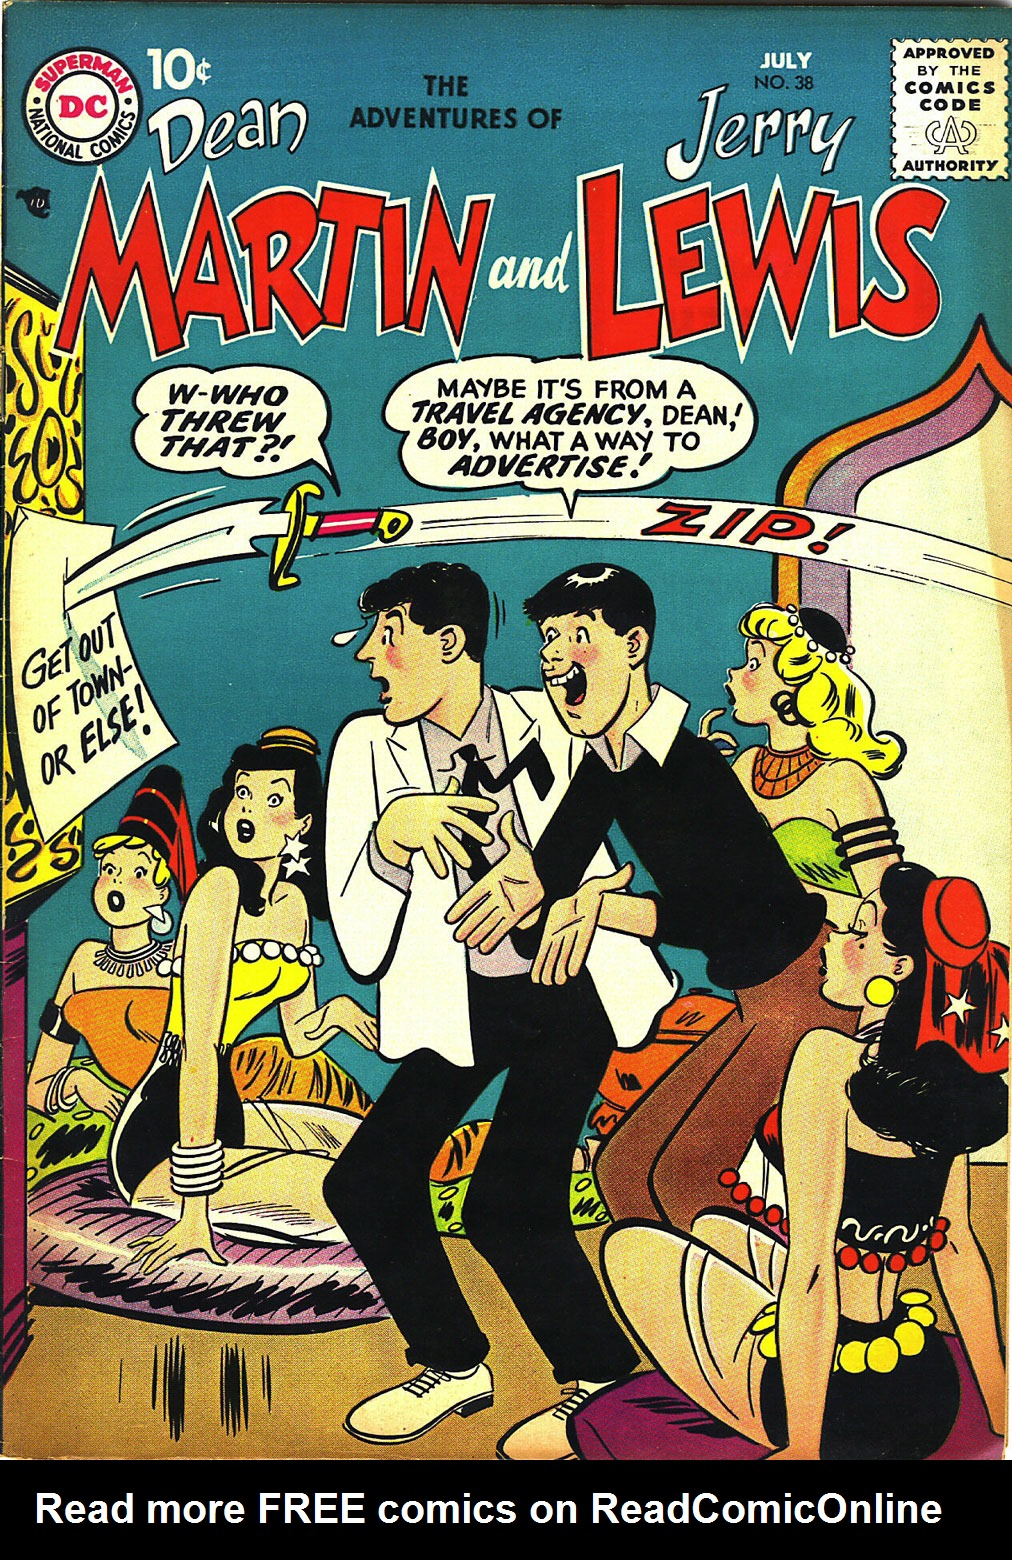 The Adventures of Dean Martin and Jerry Lewis 38 Page 1